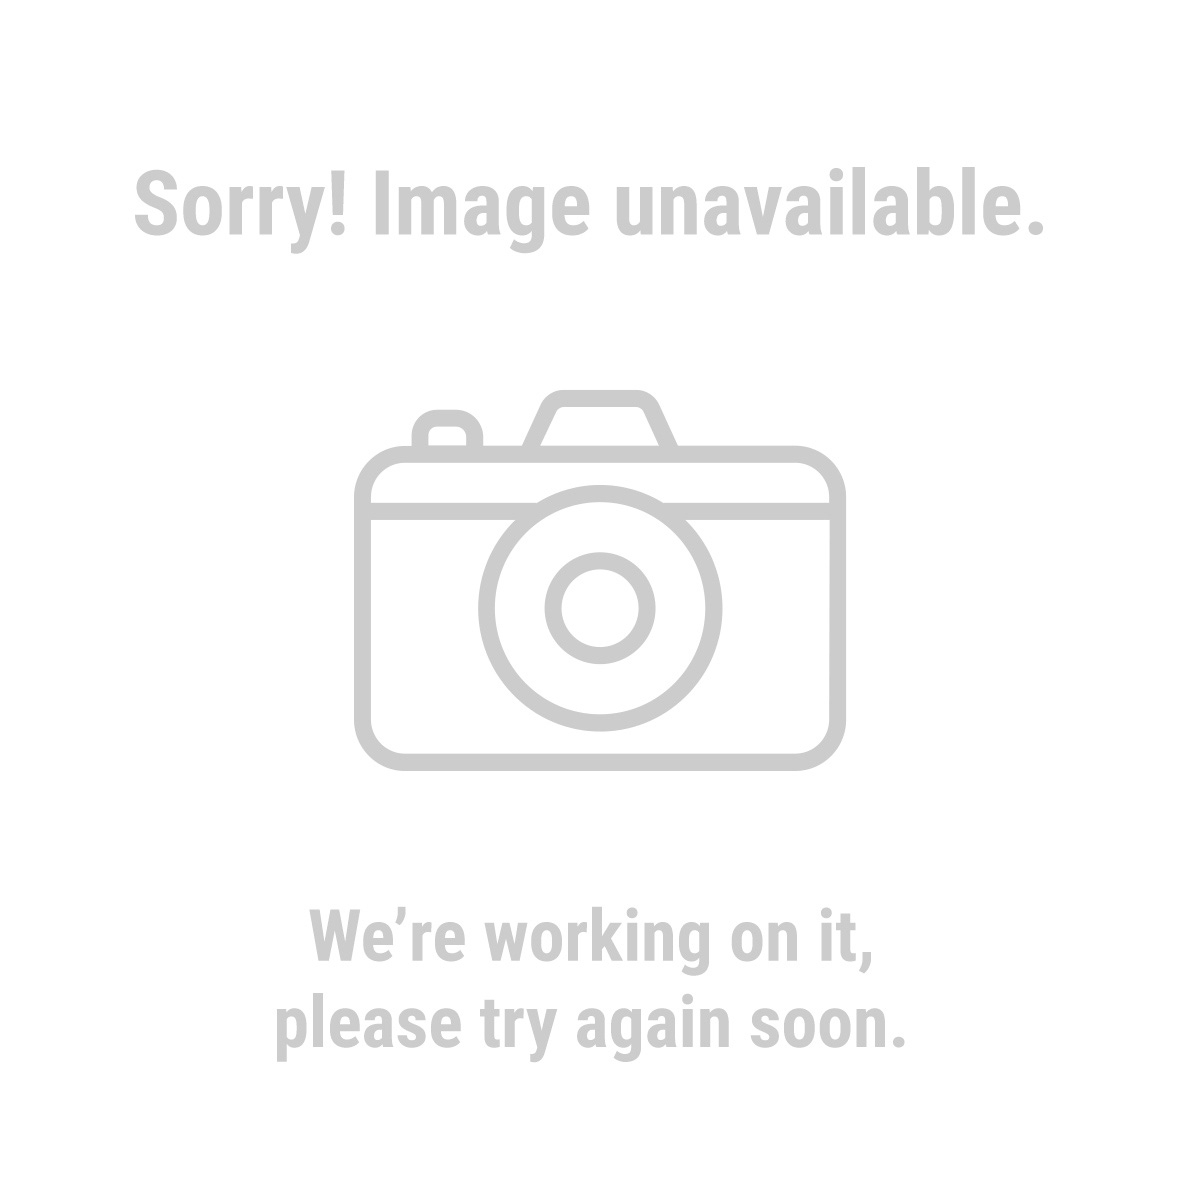 Warrior 69657 5 Piece Diamond Coated Rotary Cutting Discs